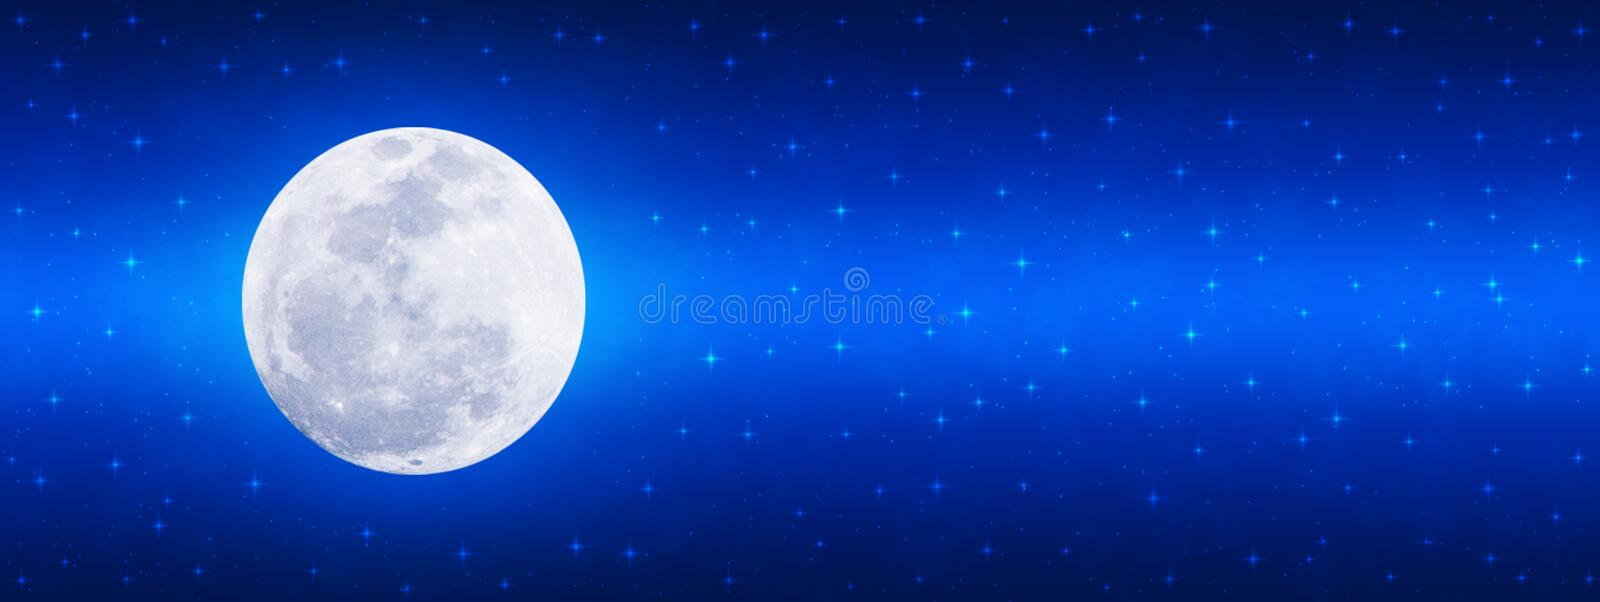 Bright Full Moon and Twinkle Stars in Shining Blue Night Sky Banner Background stock image